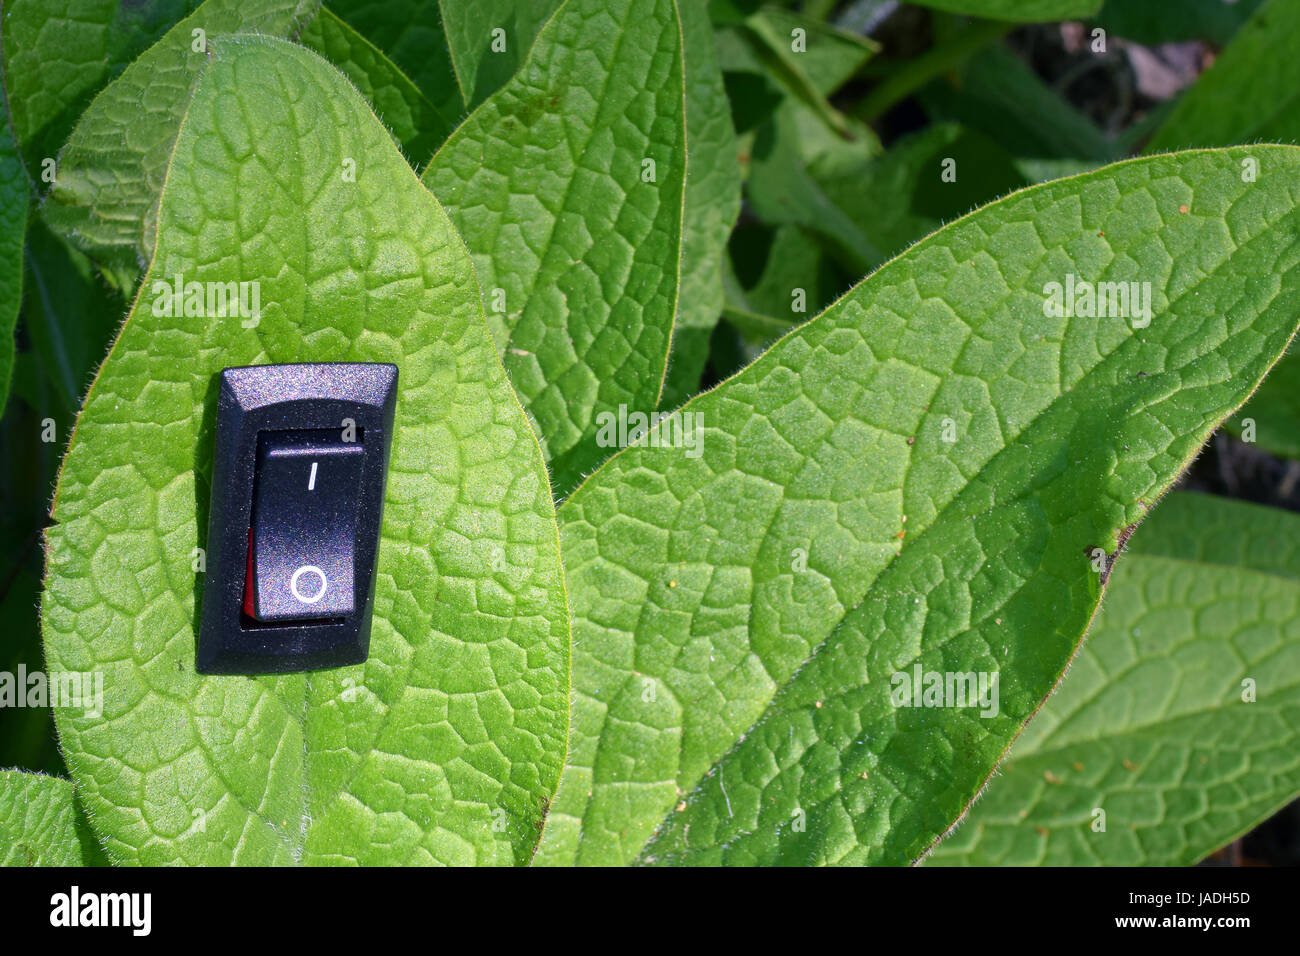 Leaf with inserted power switch turned to position on. Unique conservation and green business concept. - Stock Image